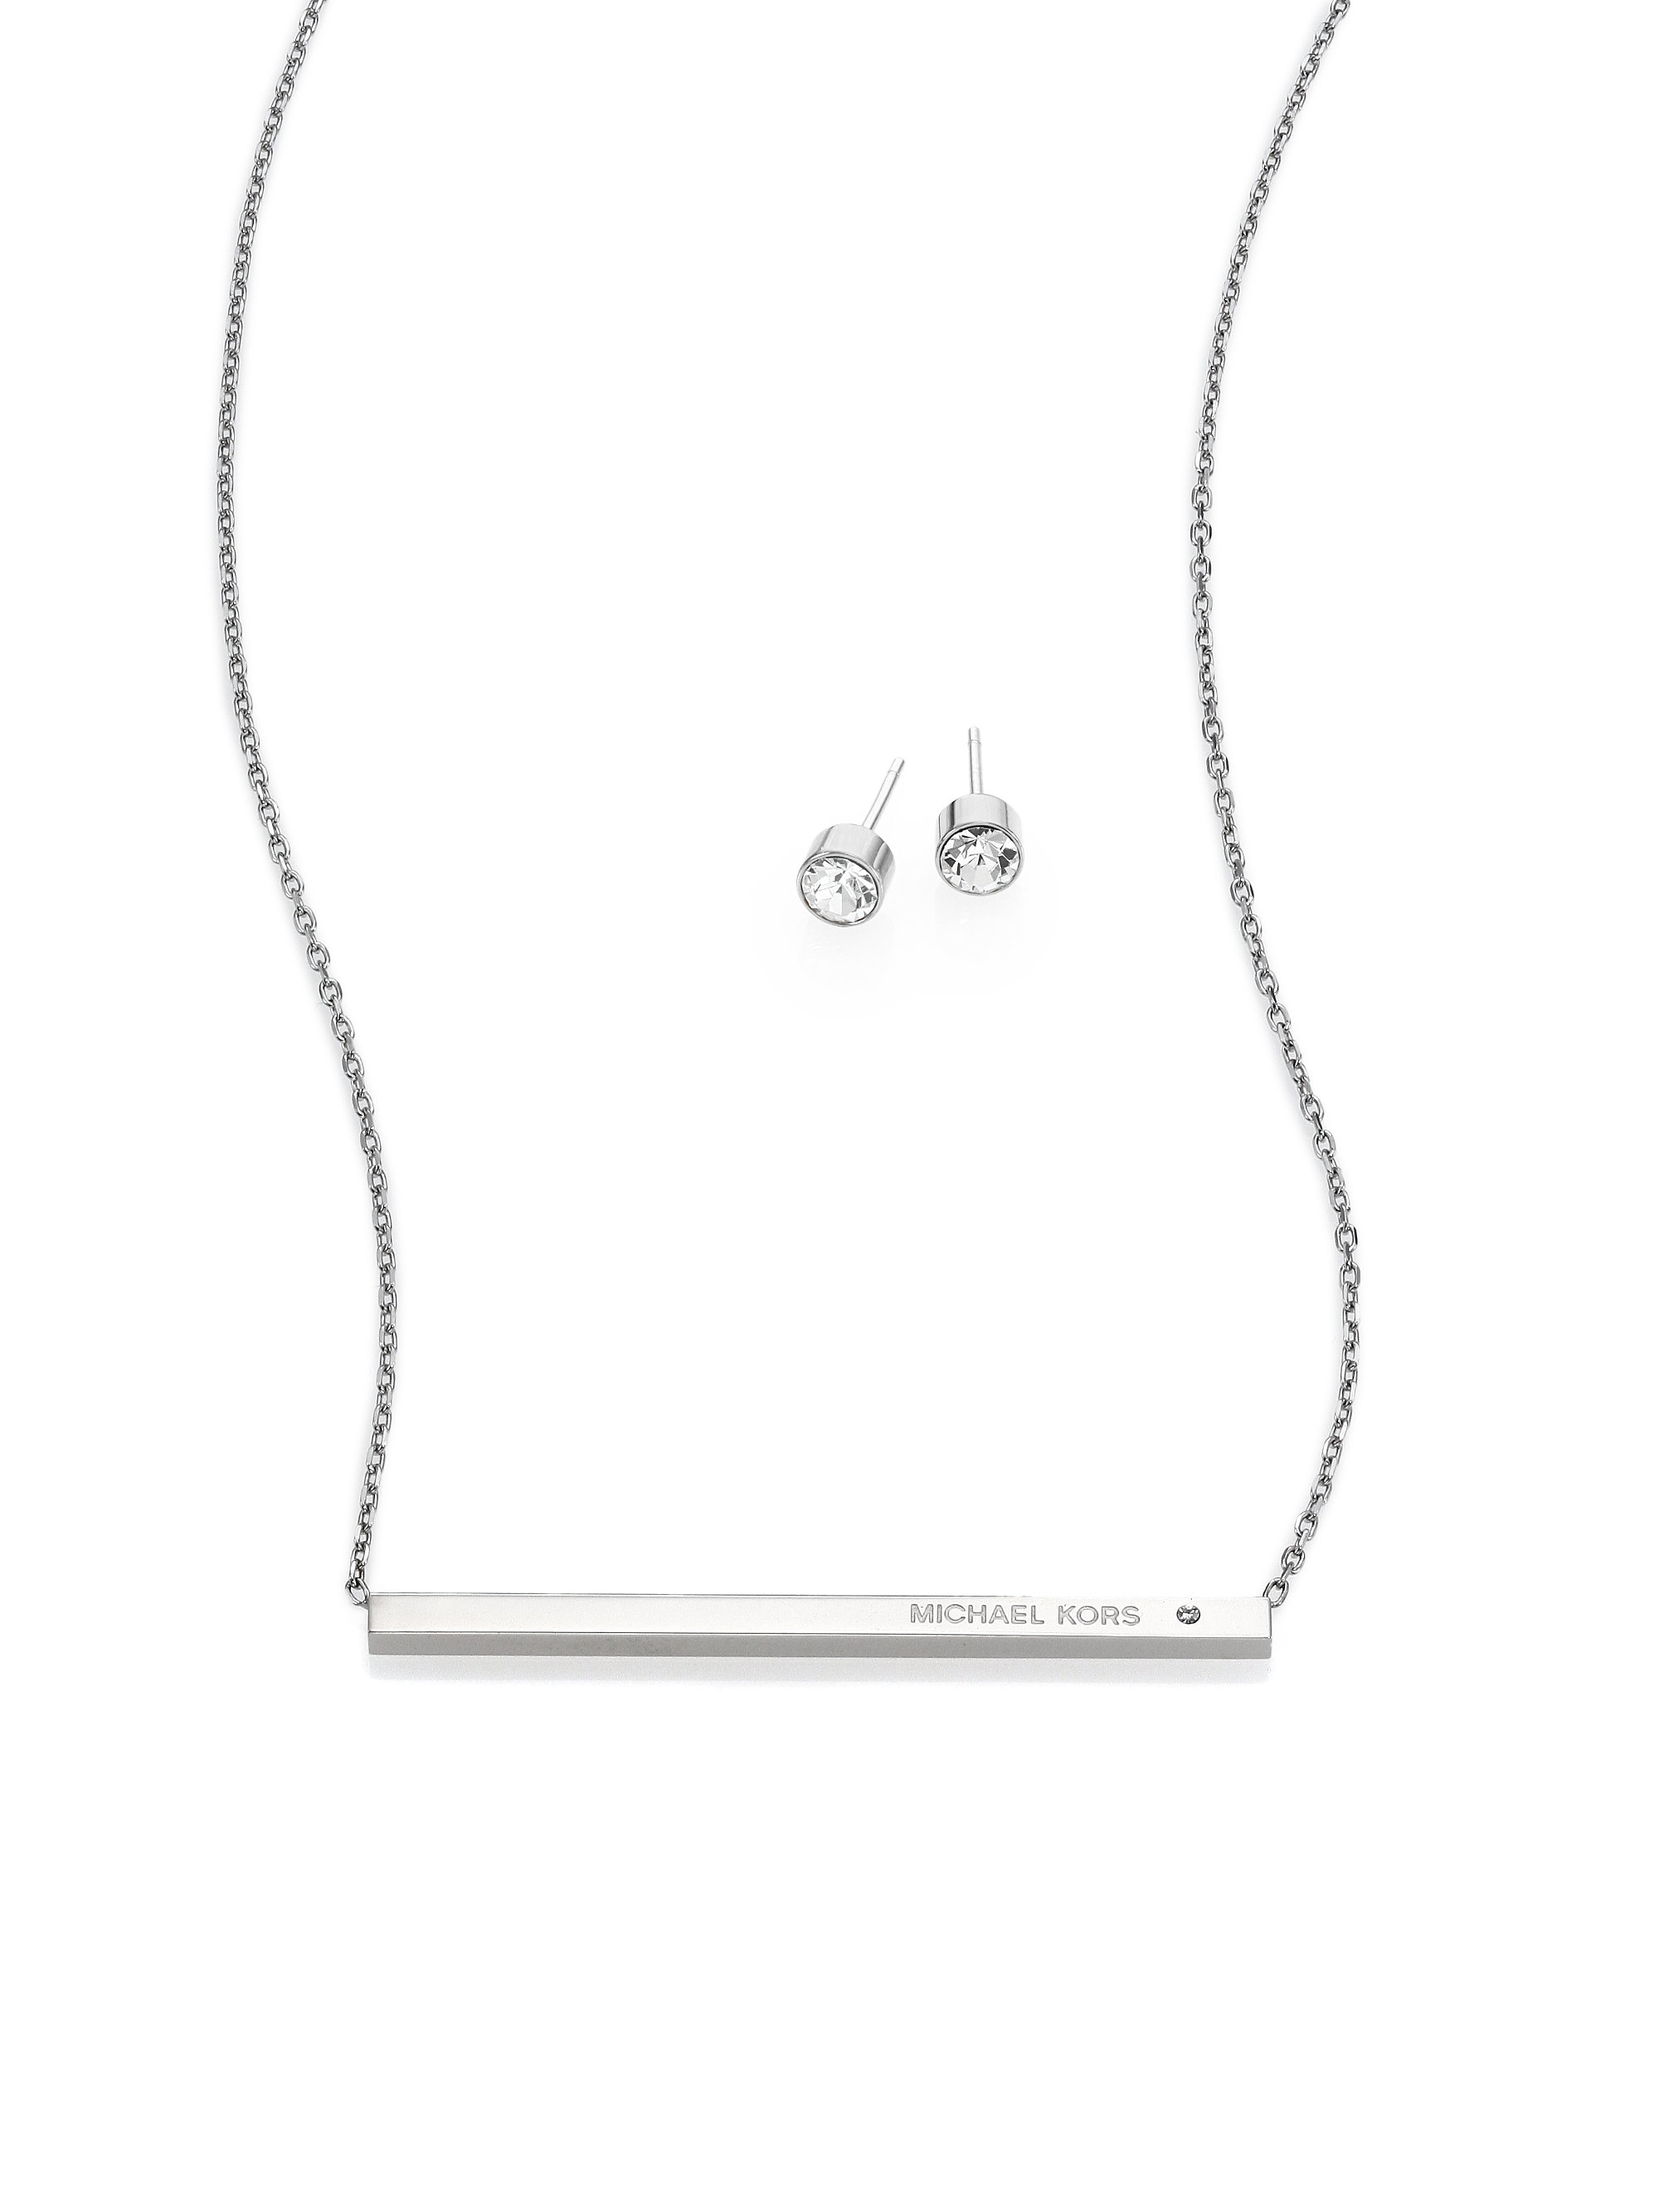 Lyst michael kors logo bar pendant necklace stud earrings set gallery mozeypictures Image collections